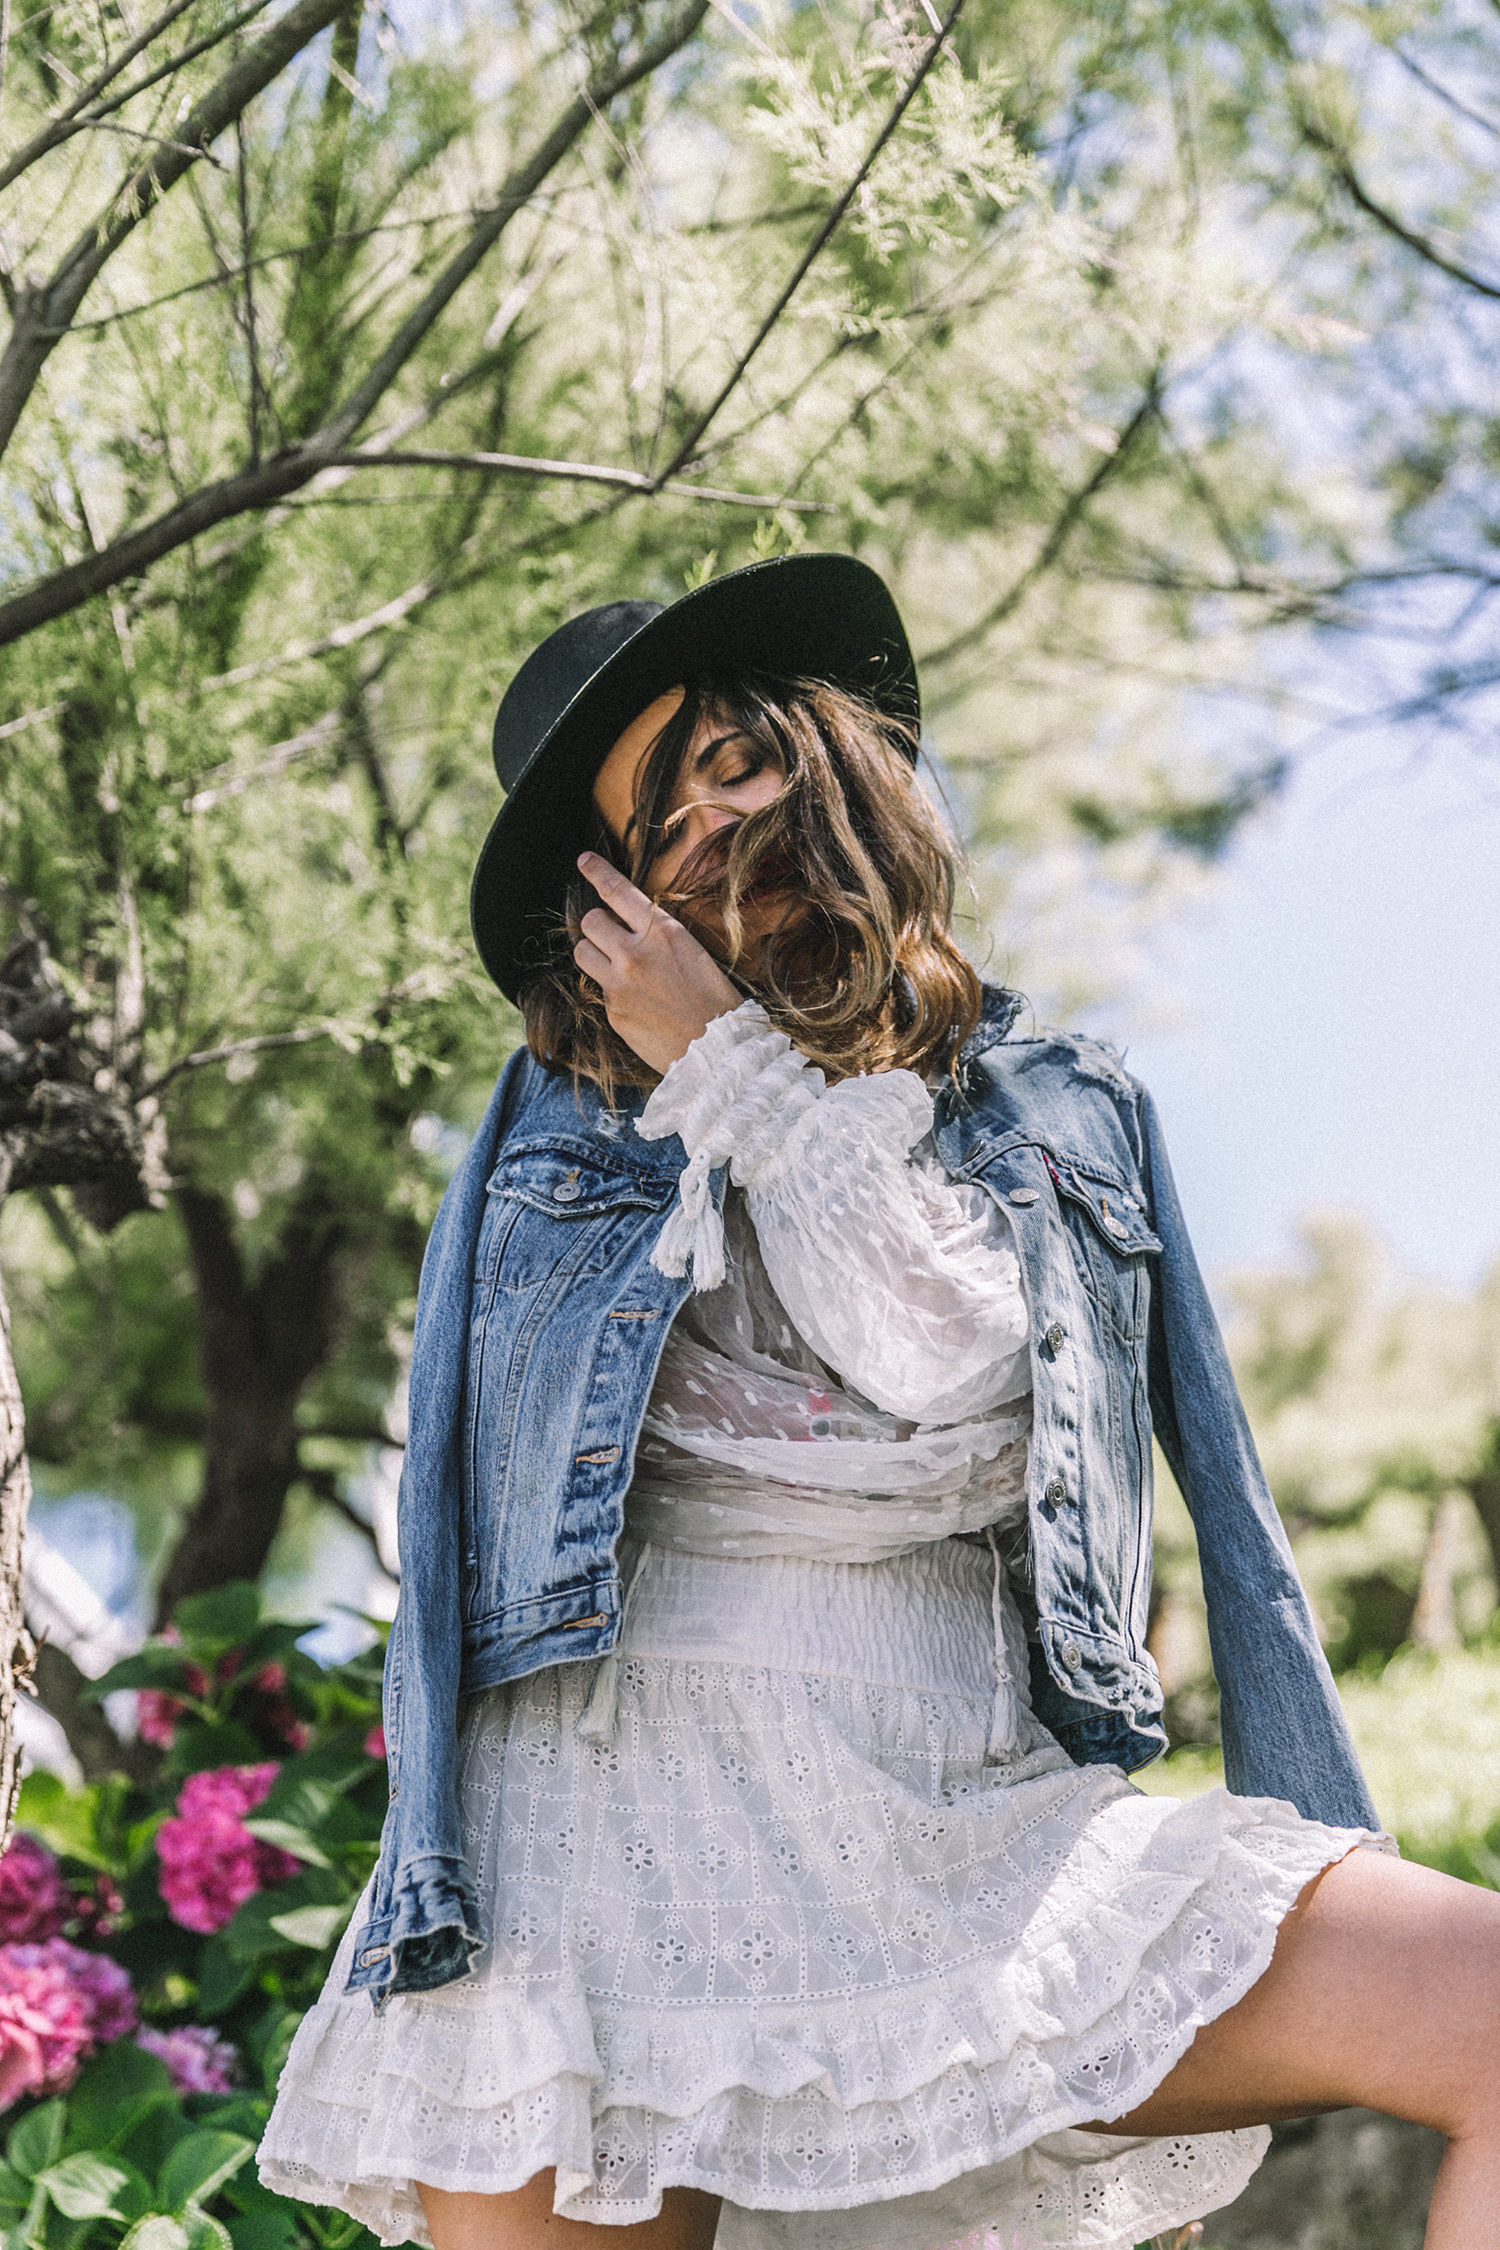 White_Outfit-Denim_Jacket-Lack_Of_Color_Hat-Outfit-Biarritz-Levis-Live_In_Levis-Street_Style-Summer-Boho_Skirt-Collage_Vintage-52